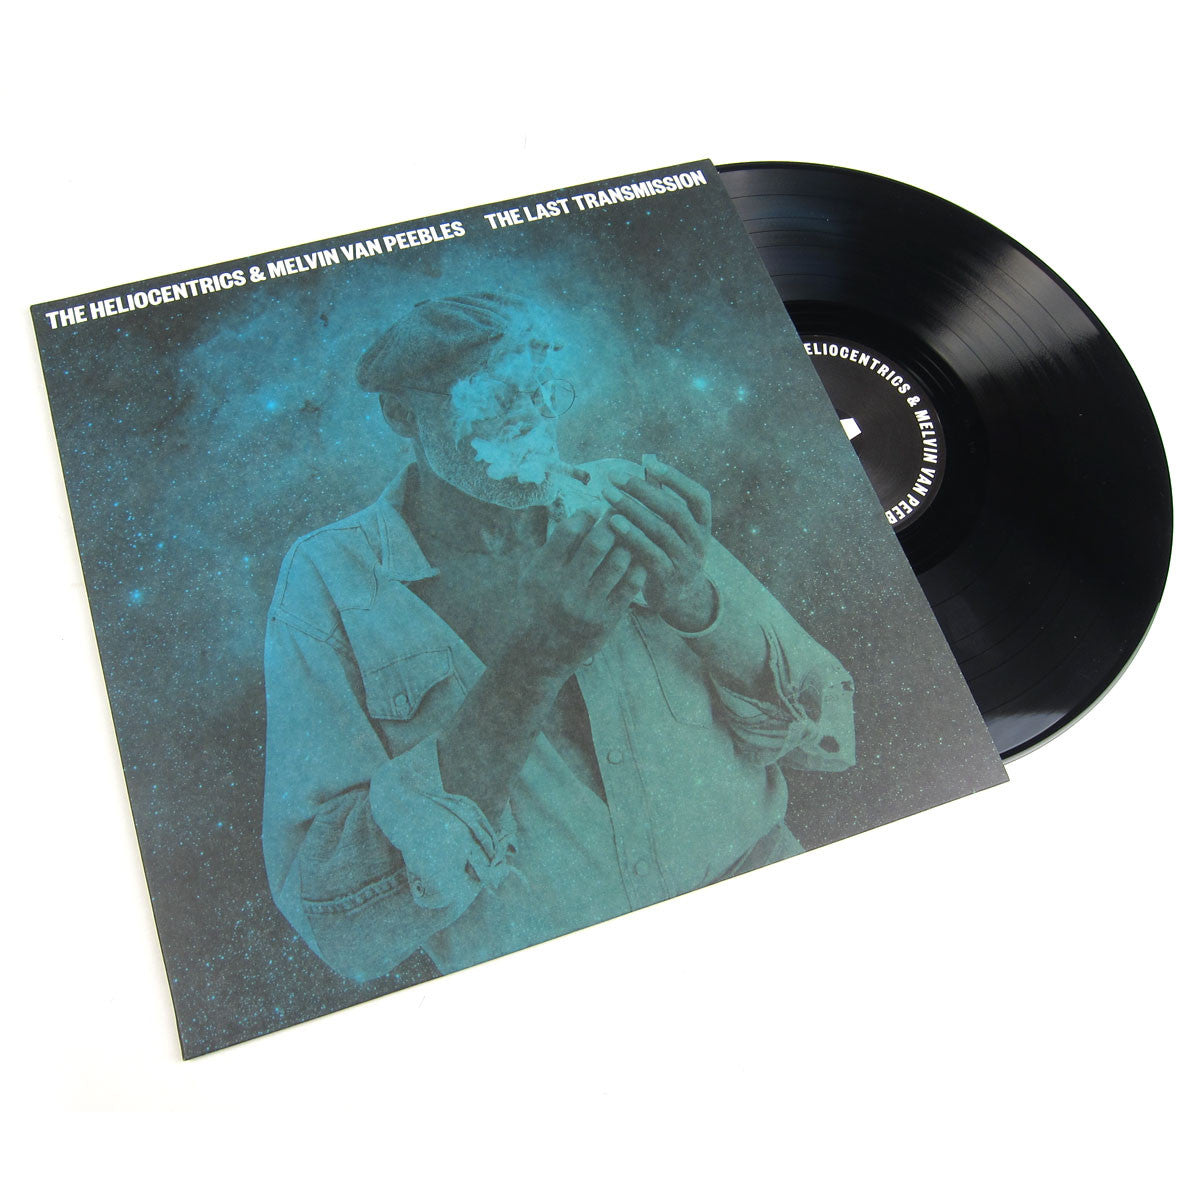 The Heliocentrics & Melvin Van Peebles: The Last Transmission (Free MP3) Vinyl 2LP